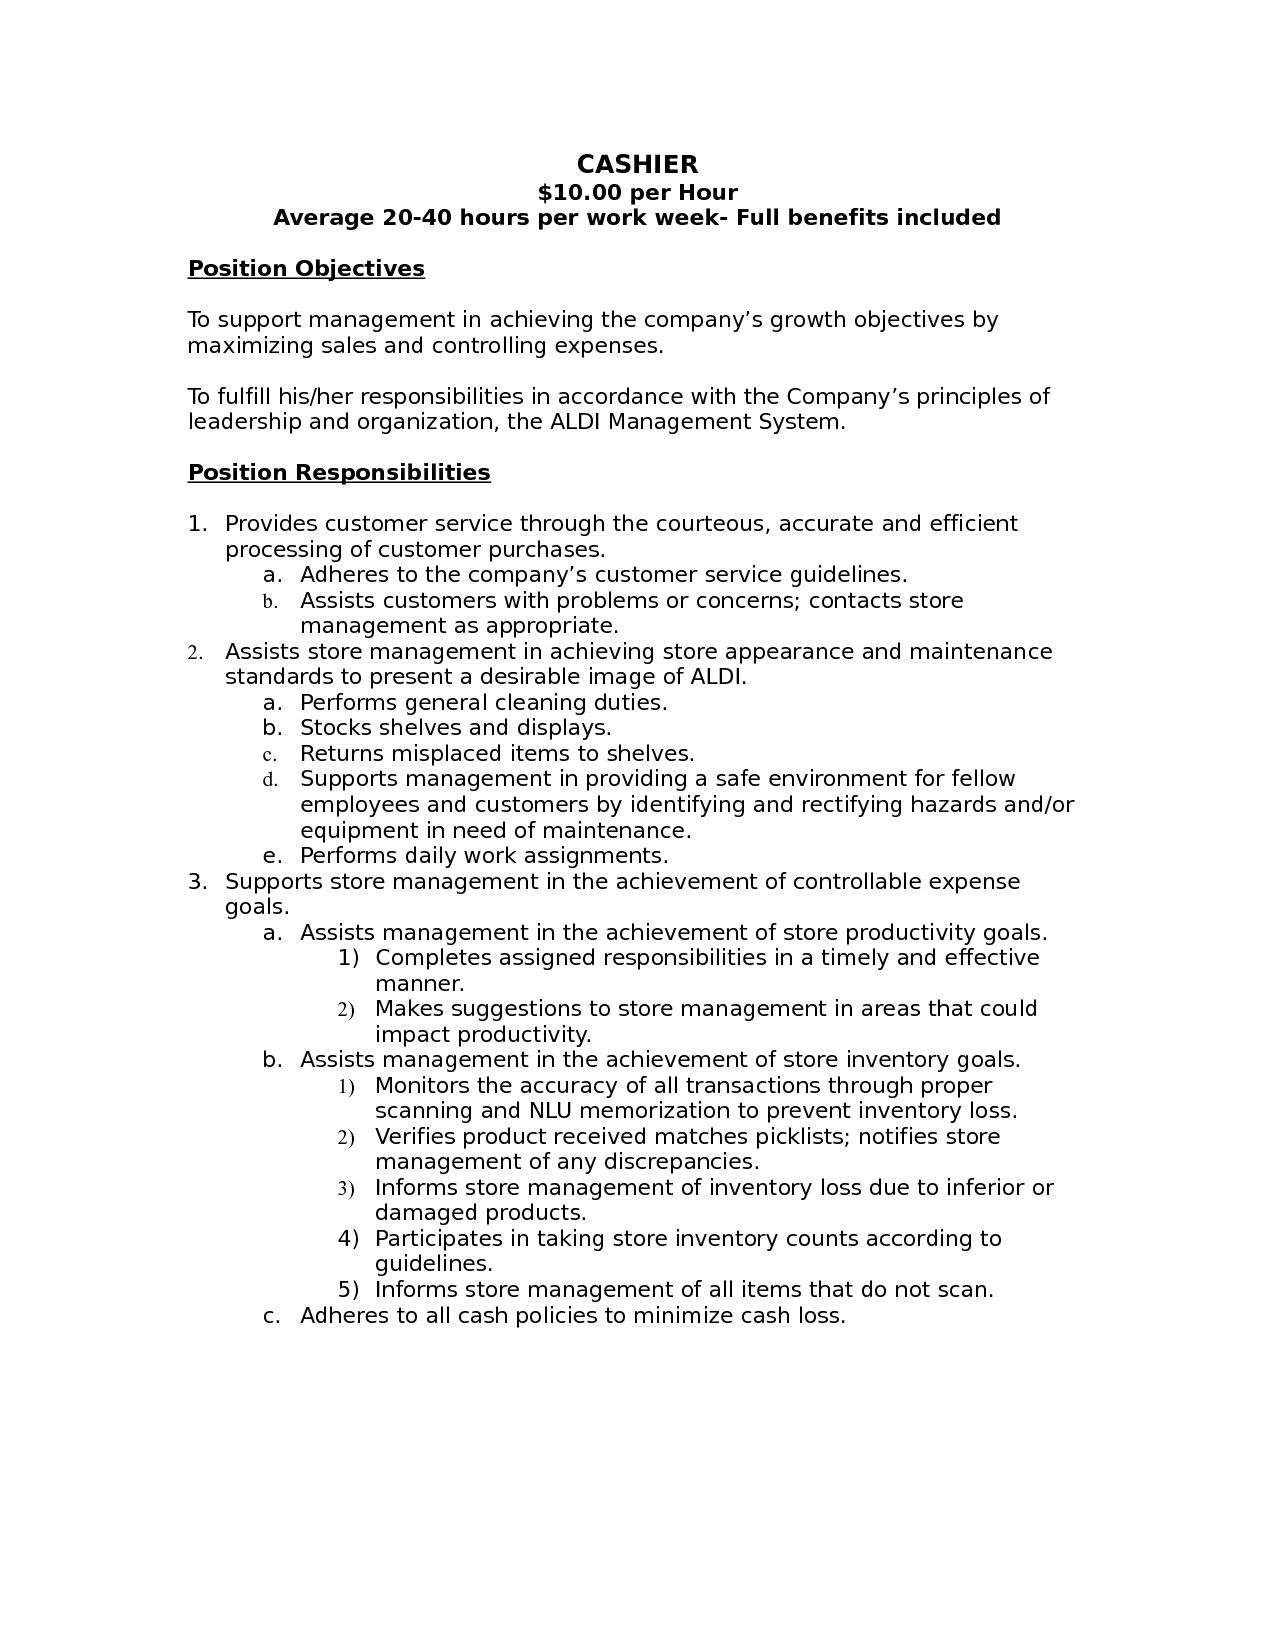 cashier job description  cashier job description for resume